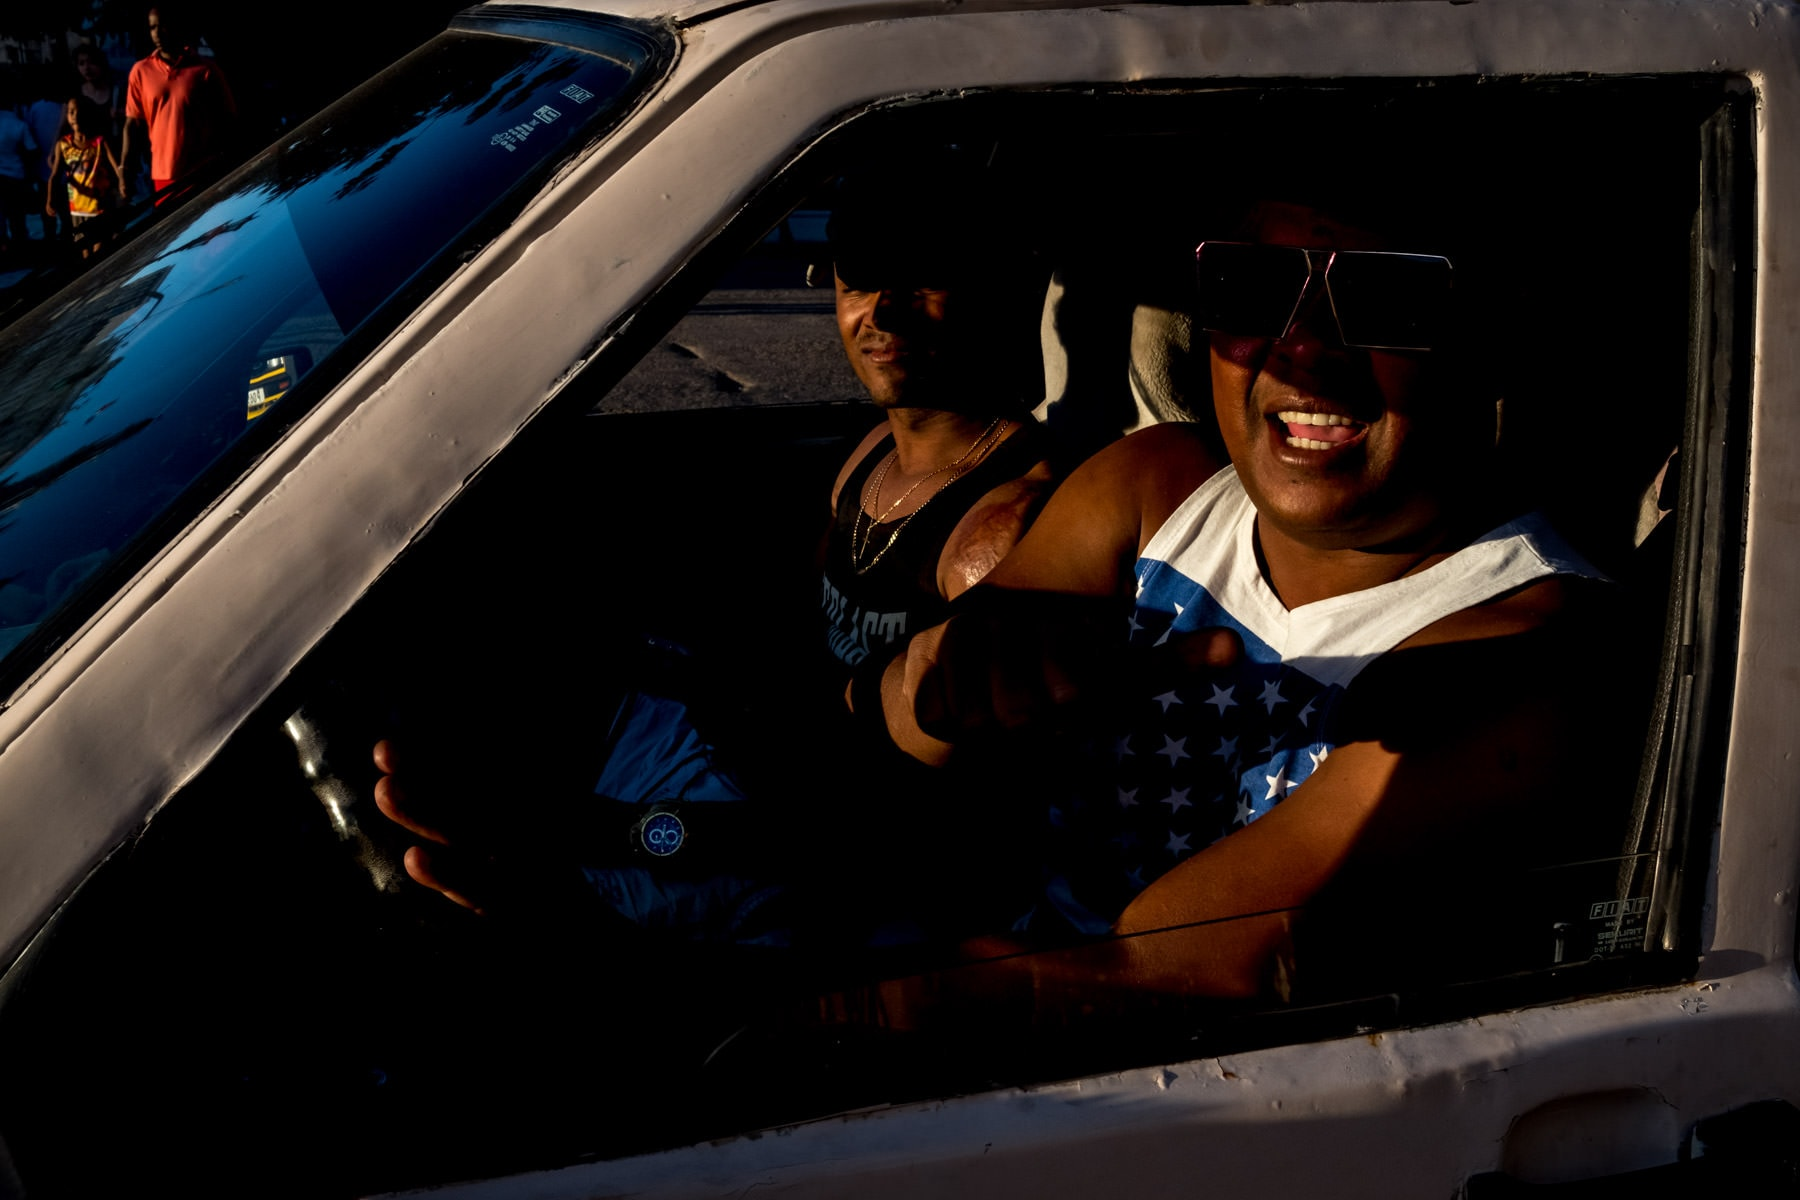 men in sunlight in a car wearing sunglasses in Havana, Cuba